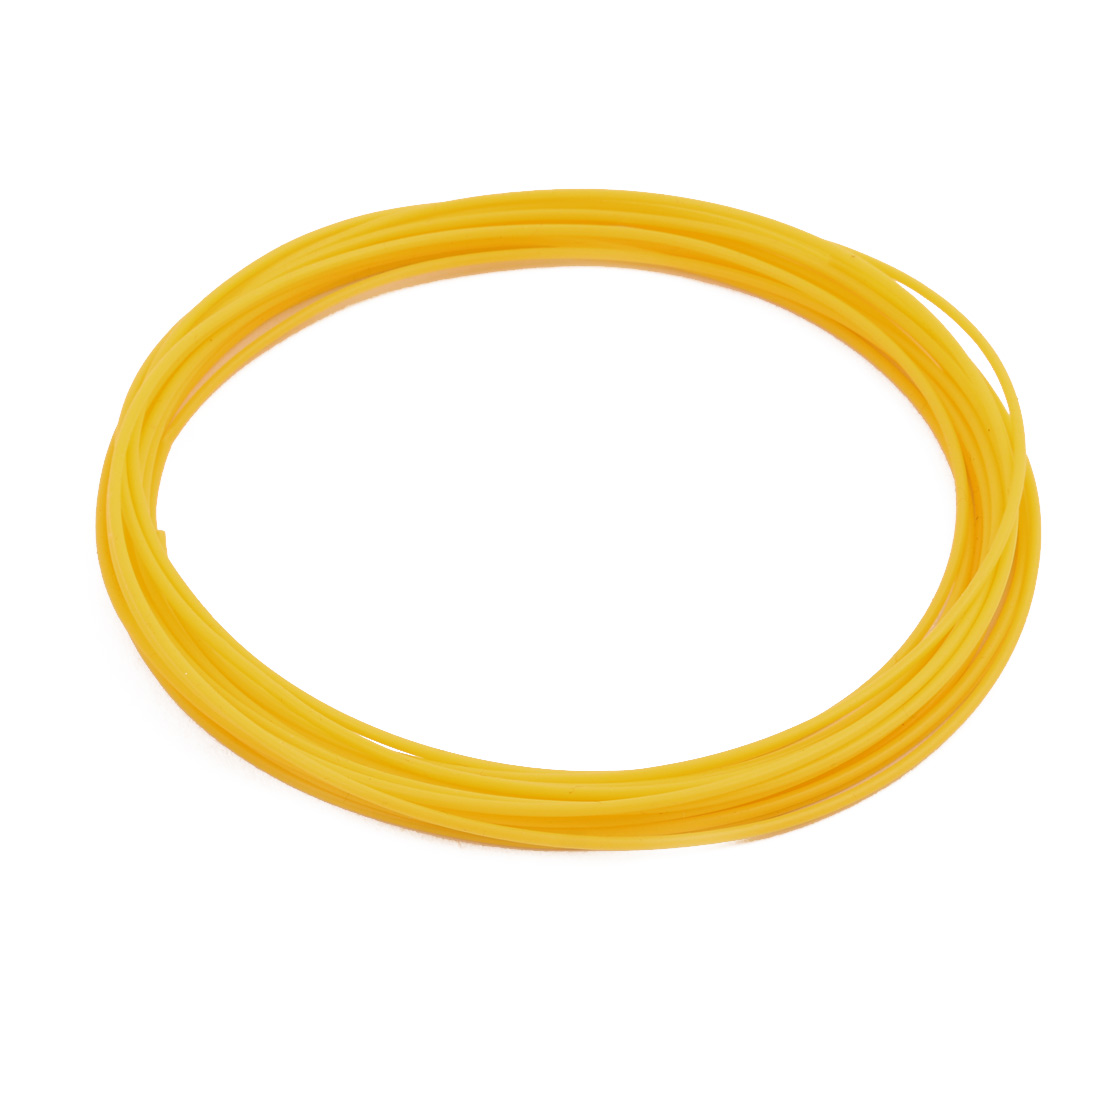 1.07mmx1.37mm PTFE Resistant High Temperature Yellow Tubing 10 Meters 32.8Ft